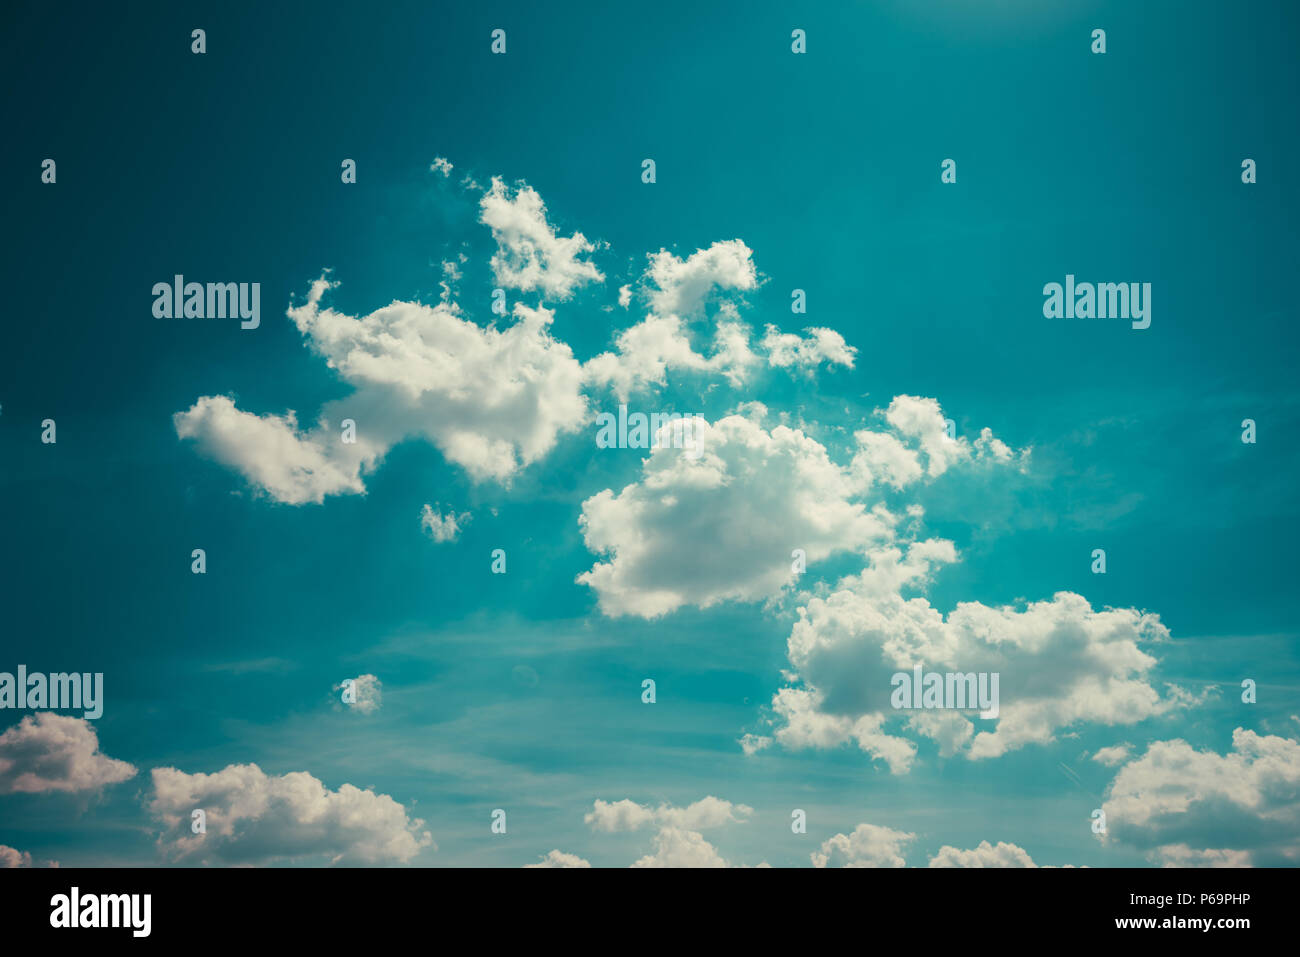 Perfect idyllic blue summer sky with white fluffy clouds and sunlight as nice weather background - Stock Image